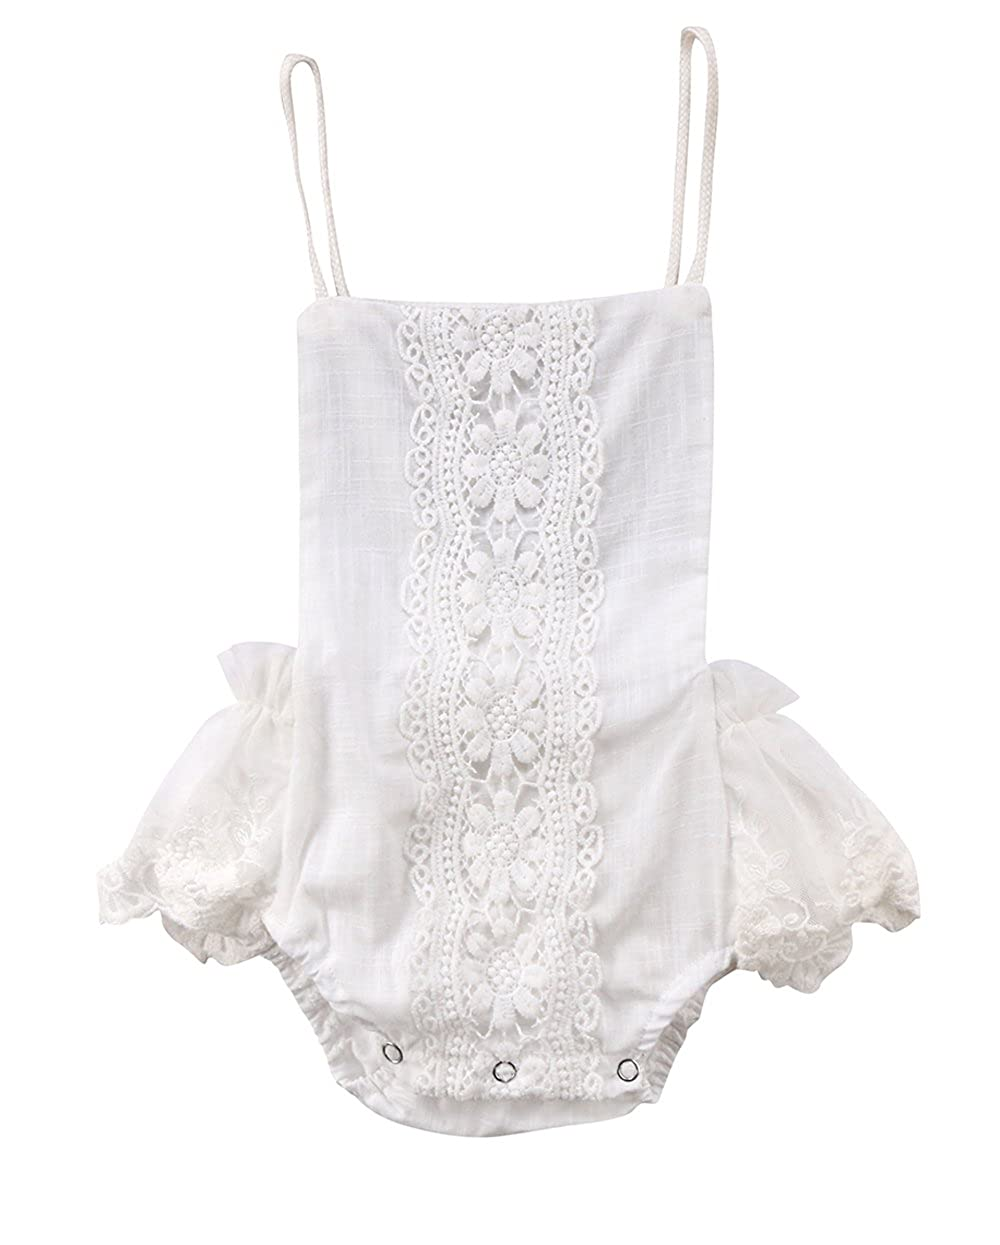 650074c5b Amazon.com: Baby Girl Lace White Embroidered Romper Infant Backless Ruffle Outfit  Clothing: Clothing